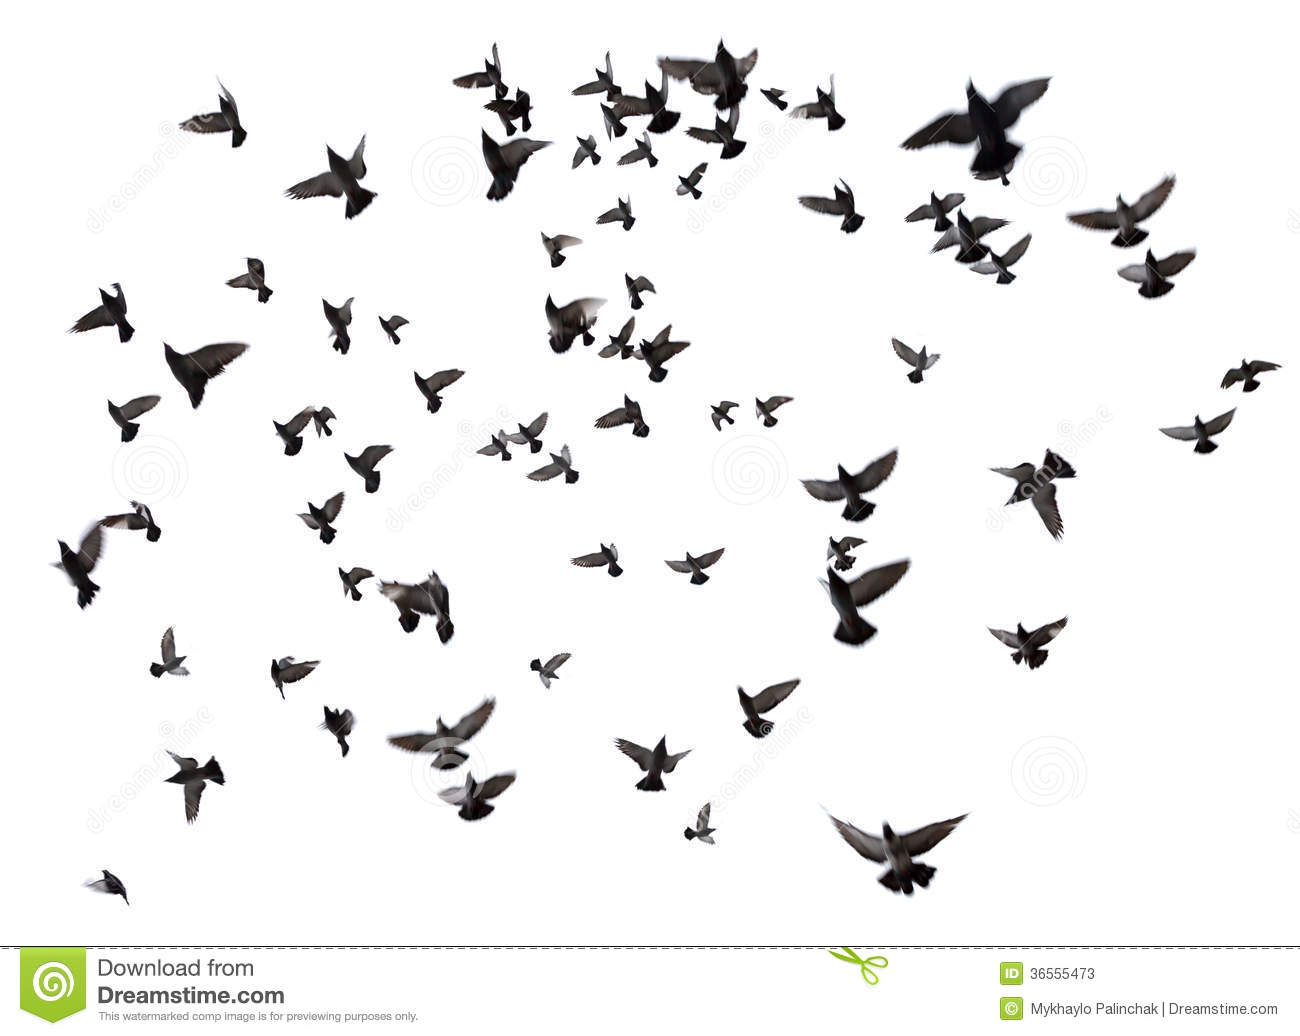 Silhouettes of pigeons. Many birds flying in the sky. Motion blur ...Dove Bird Drawing Tattoo